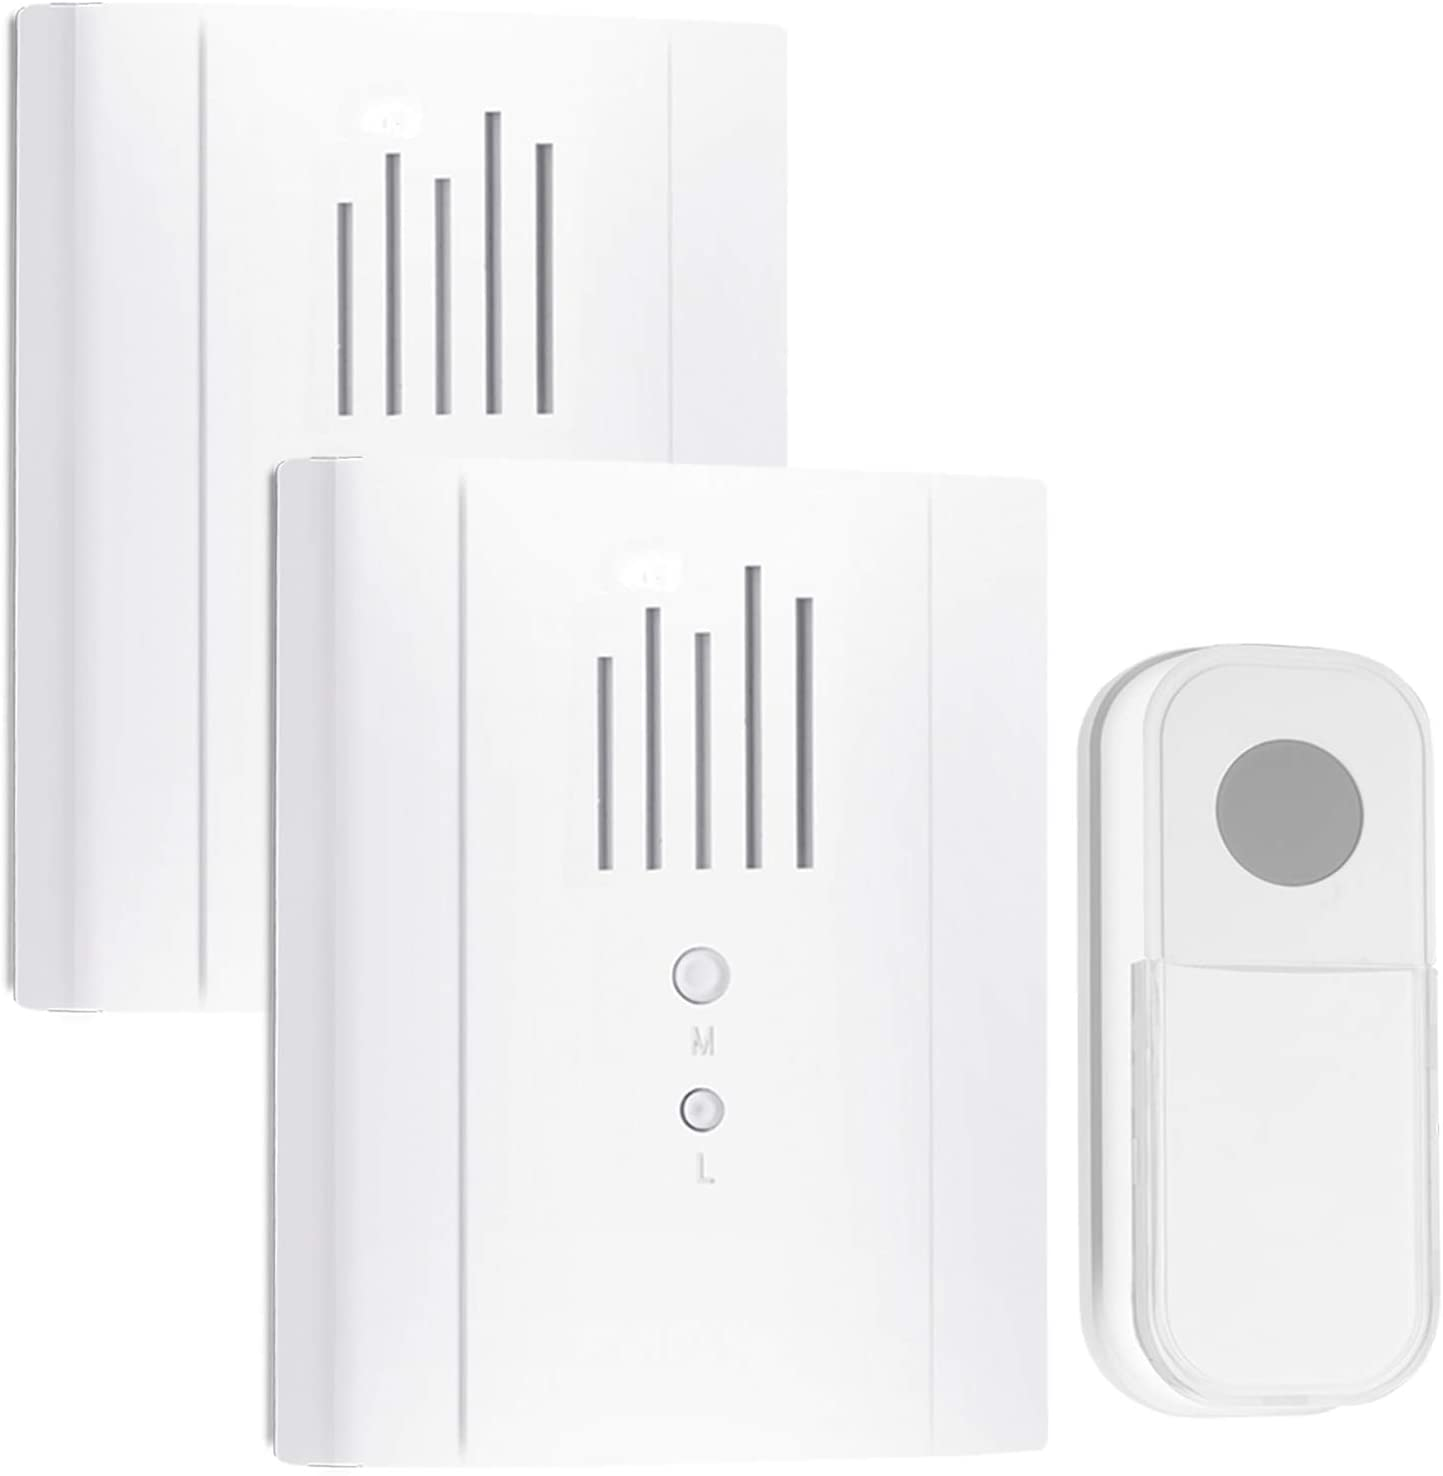 Wireless Doorbell Chime,Waterproof Door Bell Chime Kit Operating at 1300 feet,36 Chimes,DIY Name Plate Suitable for Home Office Classroom,98190x2+90022